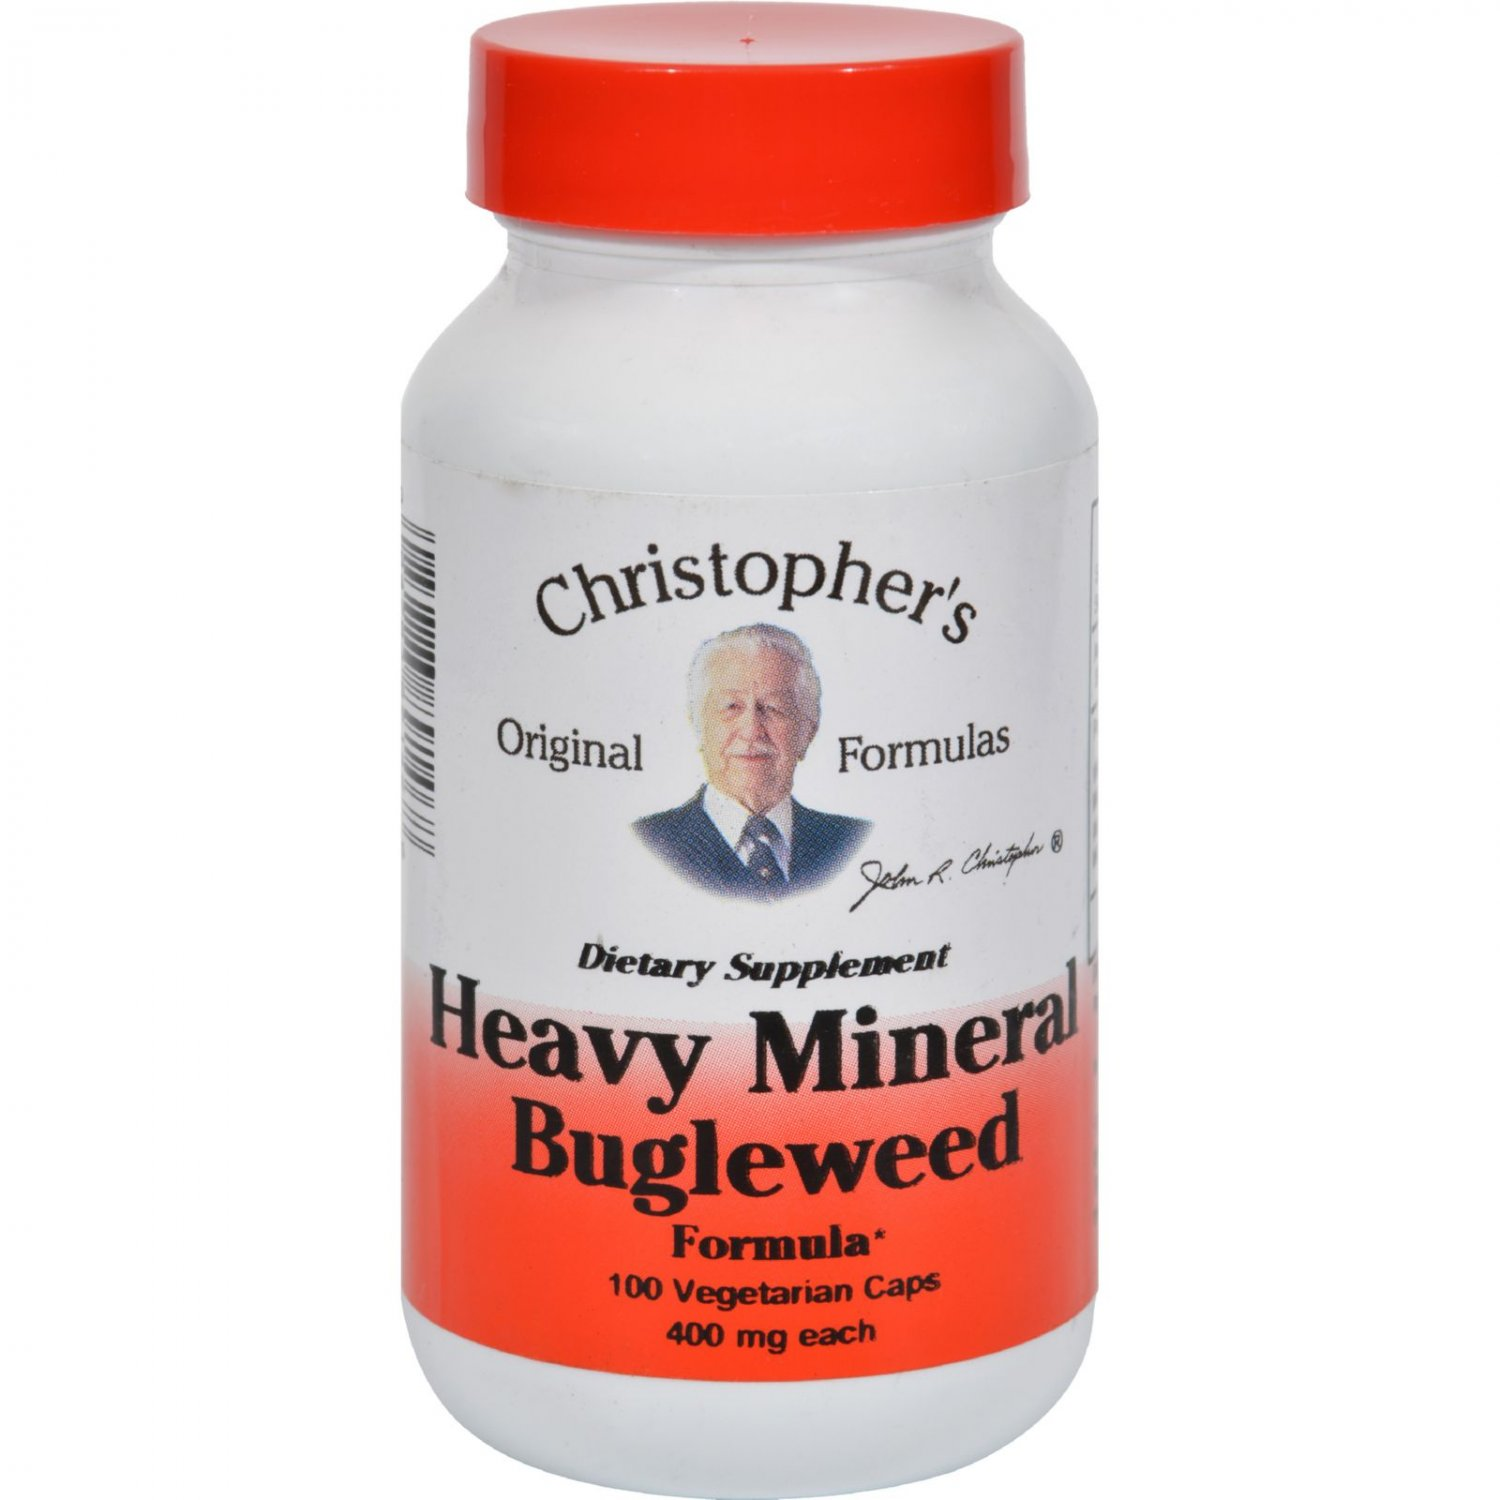 Dr. Christopher's Formulas Heavy Mineral Bugleweed Formula - 400 mg - 100 Caps